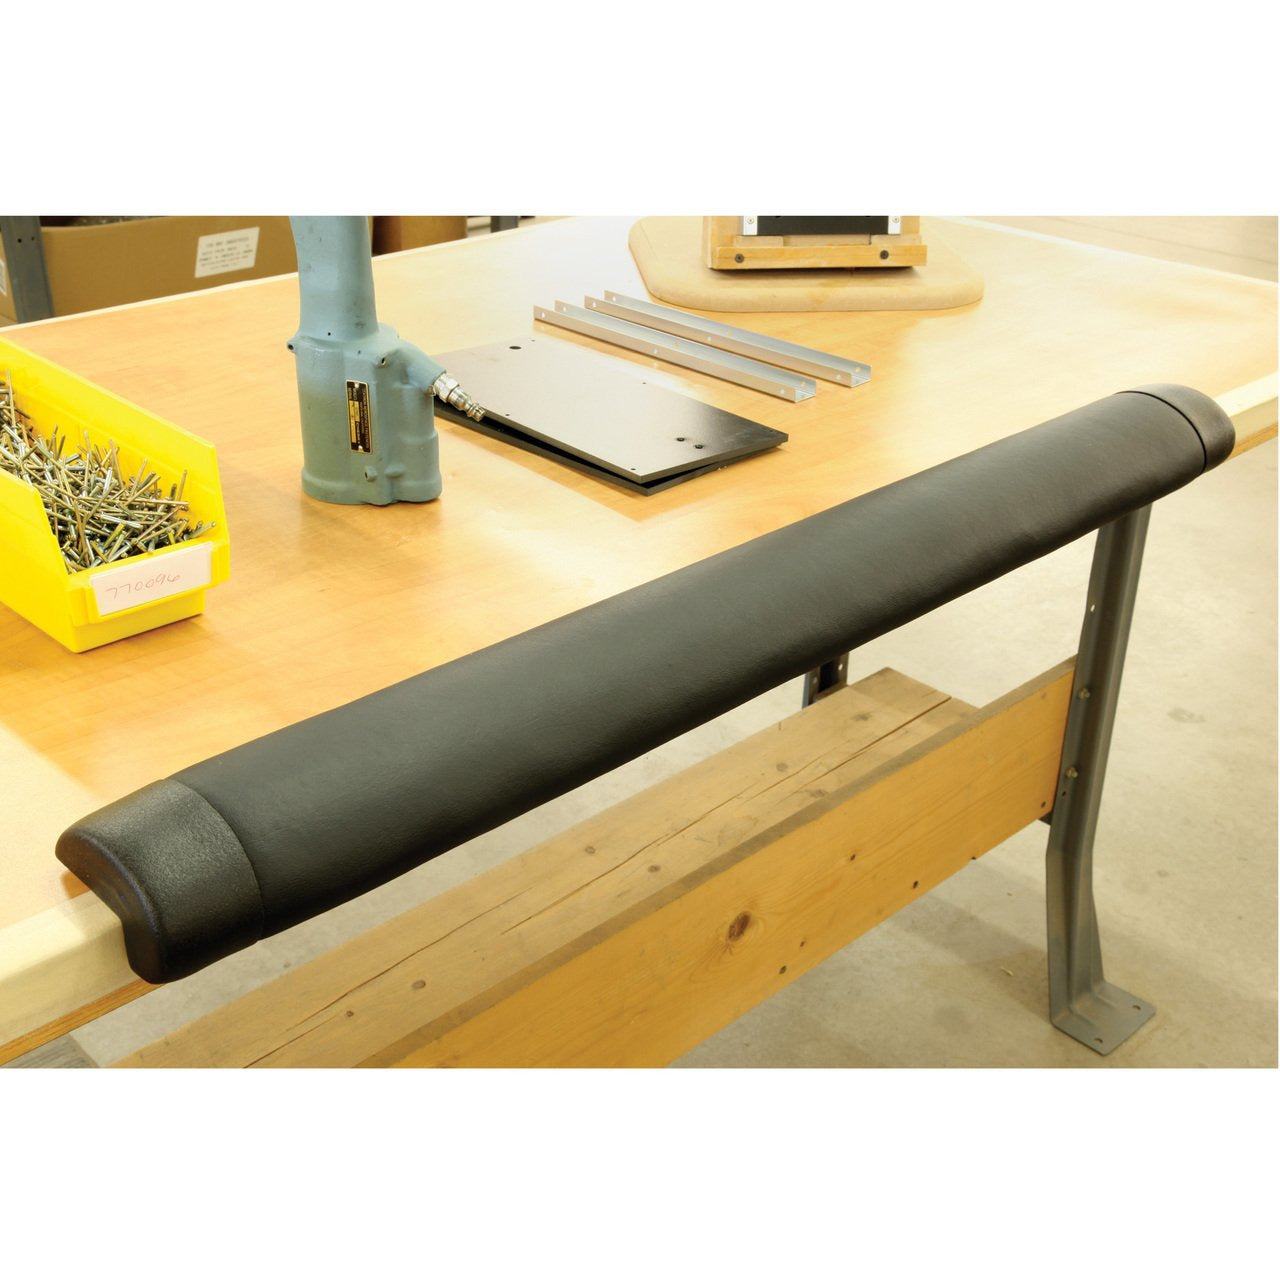 Stratis Industries Benchmate Arm Rest Support - 36""